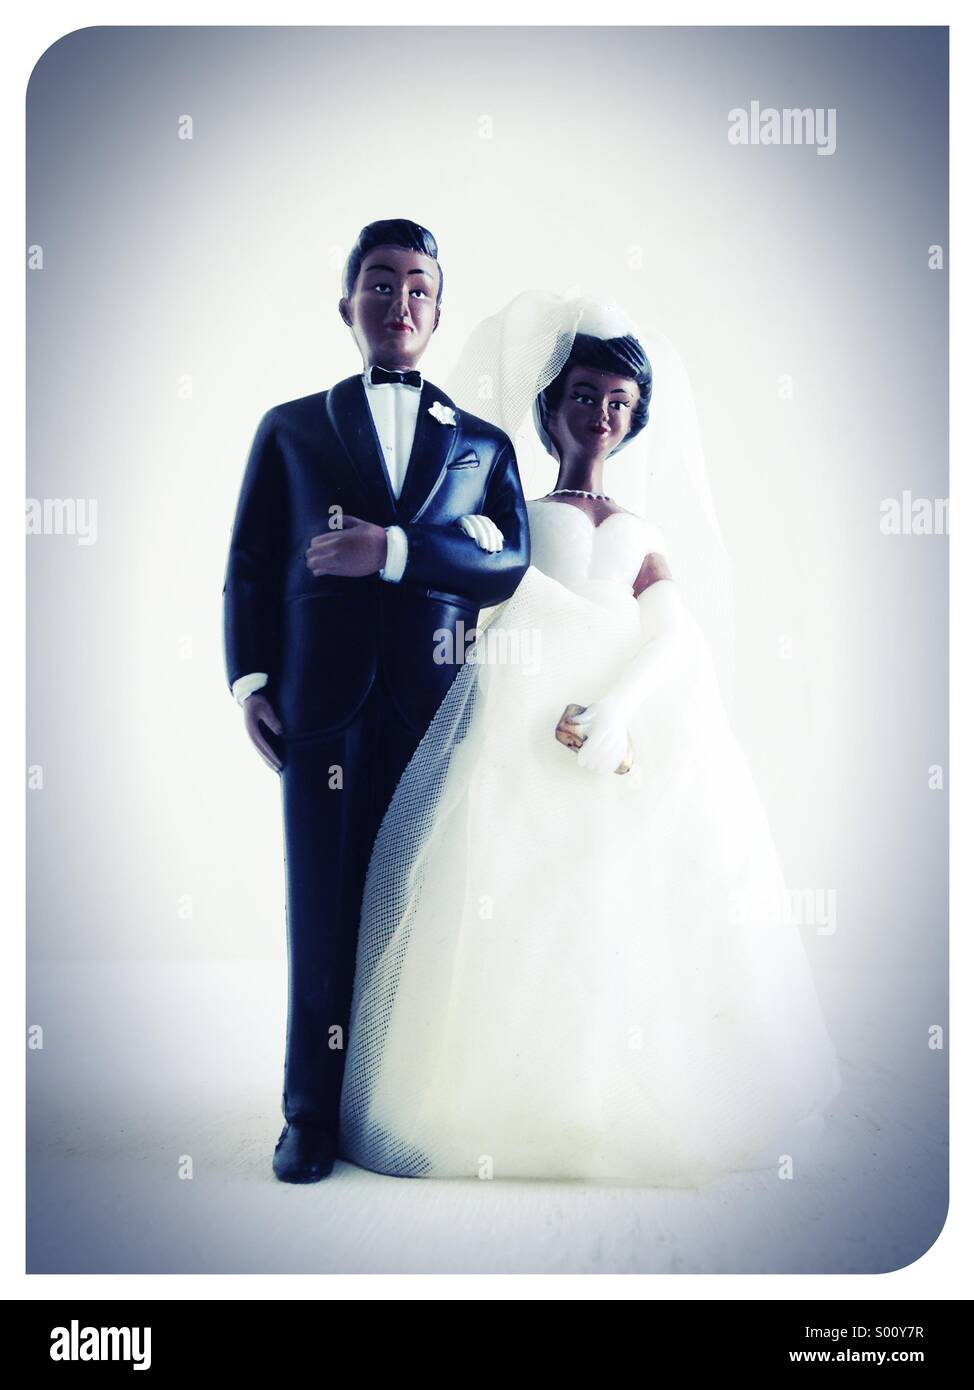 A wedding cake topper of a black heterosexual couple. - Stock Image